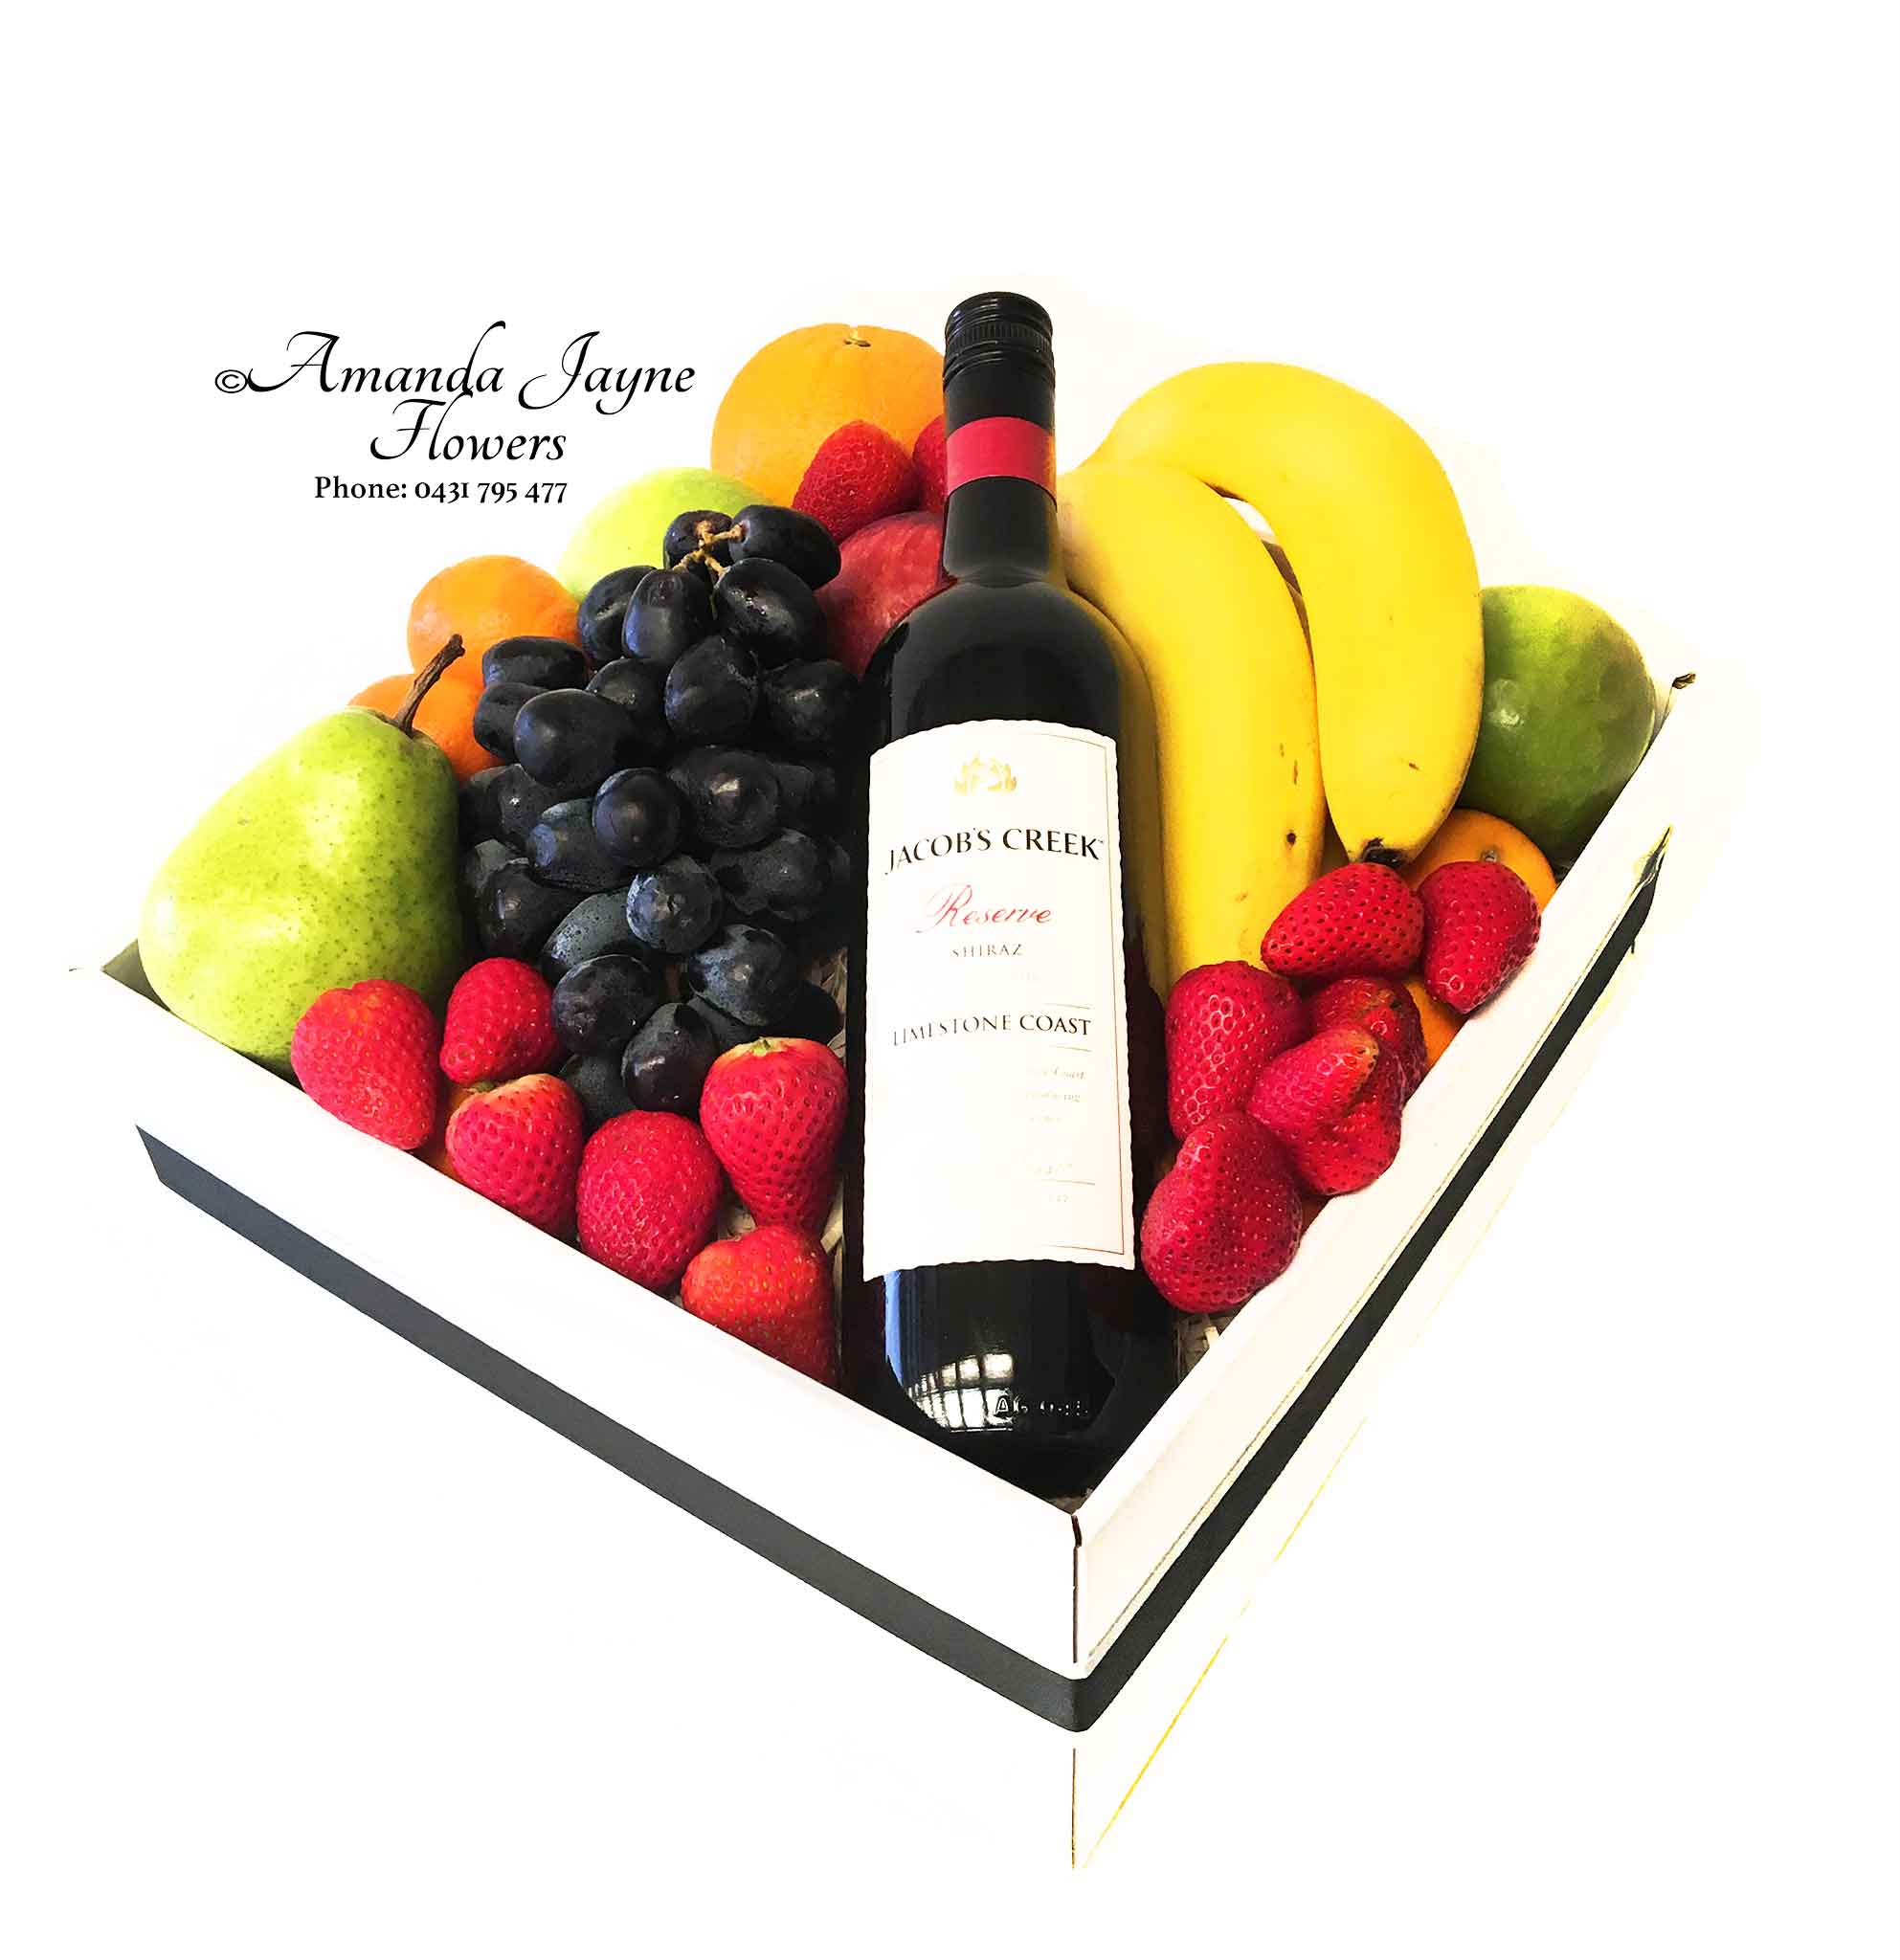 Deluxe Fruit Hamper with wine